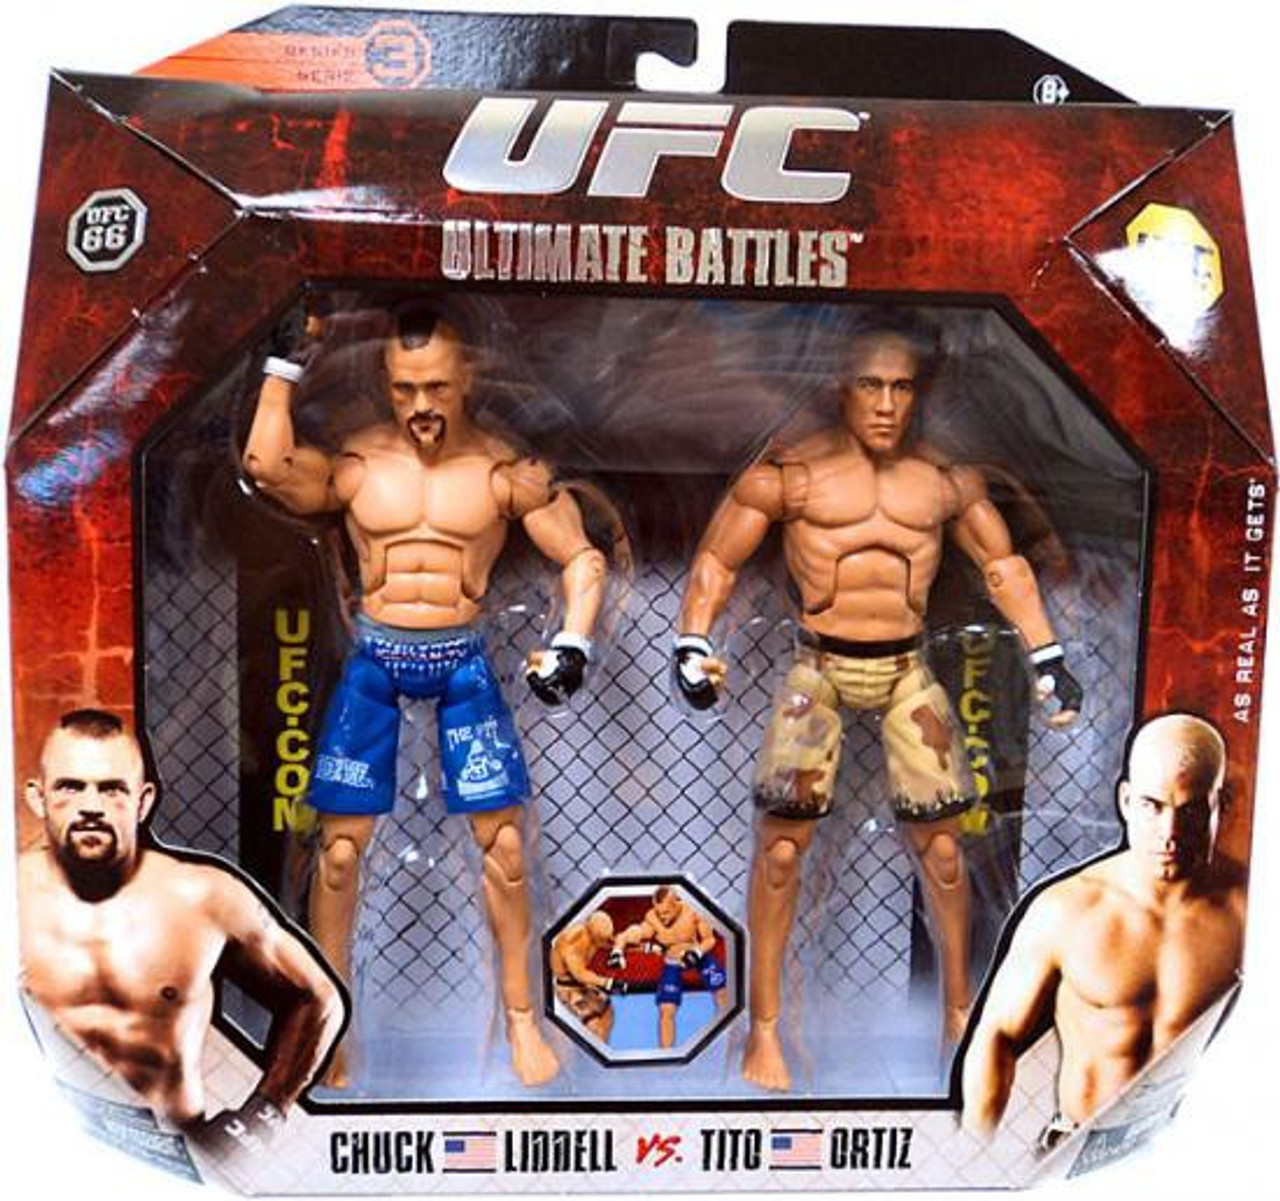 Ufc Ultimate Battles Series 3 Tito Ortiz . Chuck Liddell Action Figure 2-pack 66 Jakks